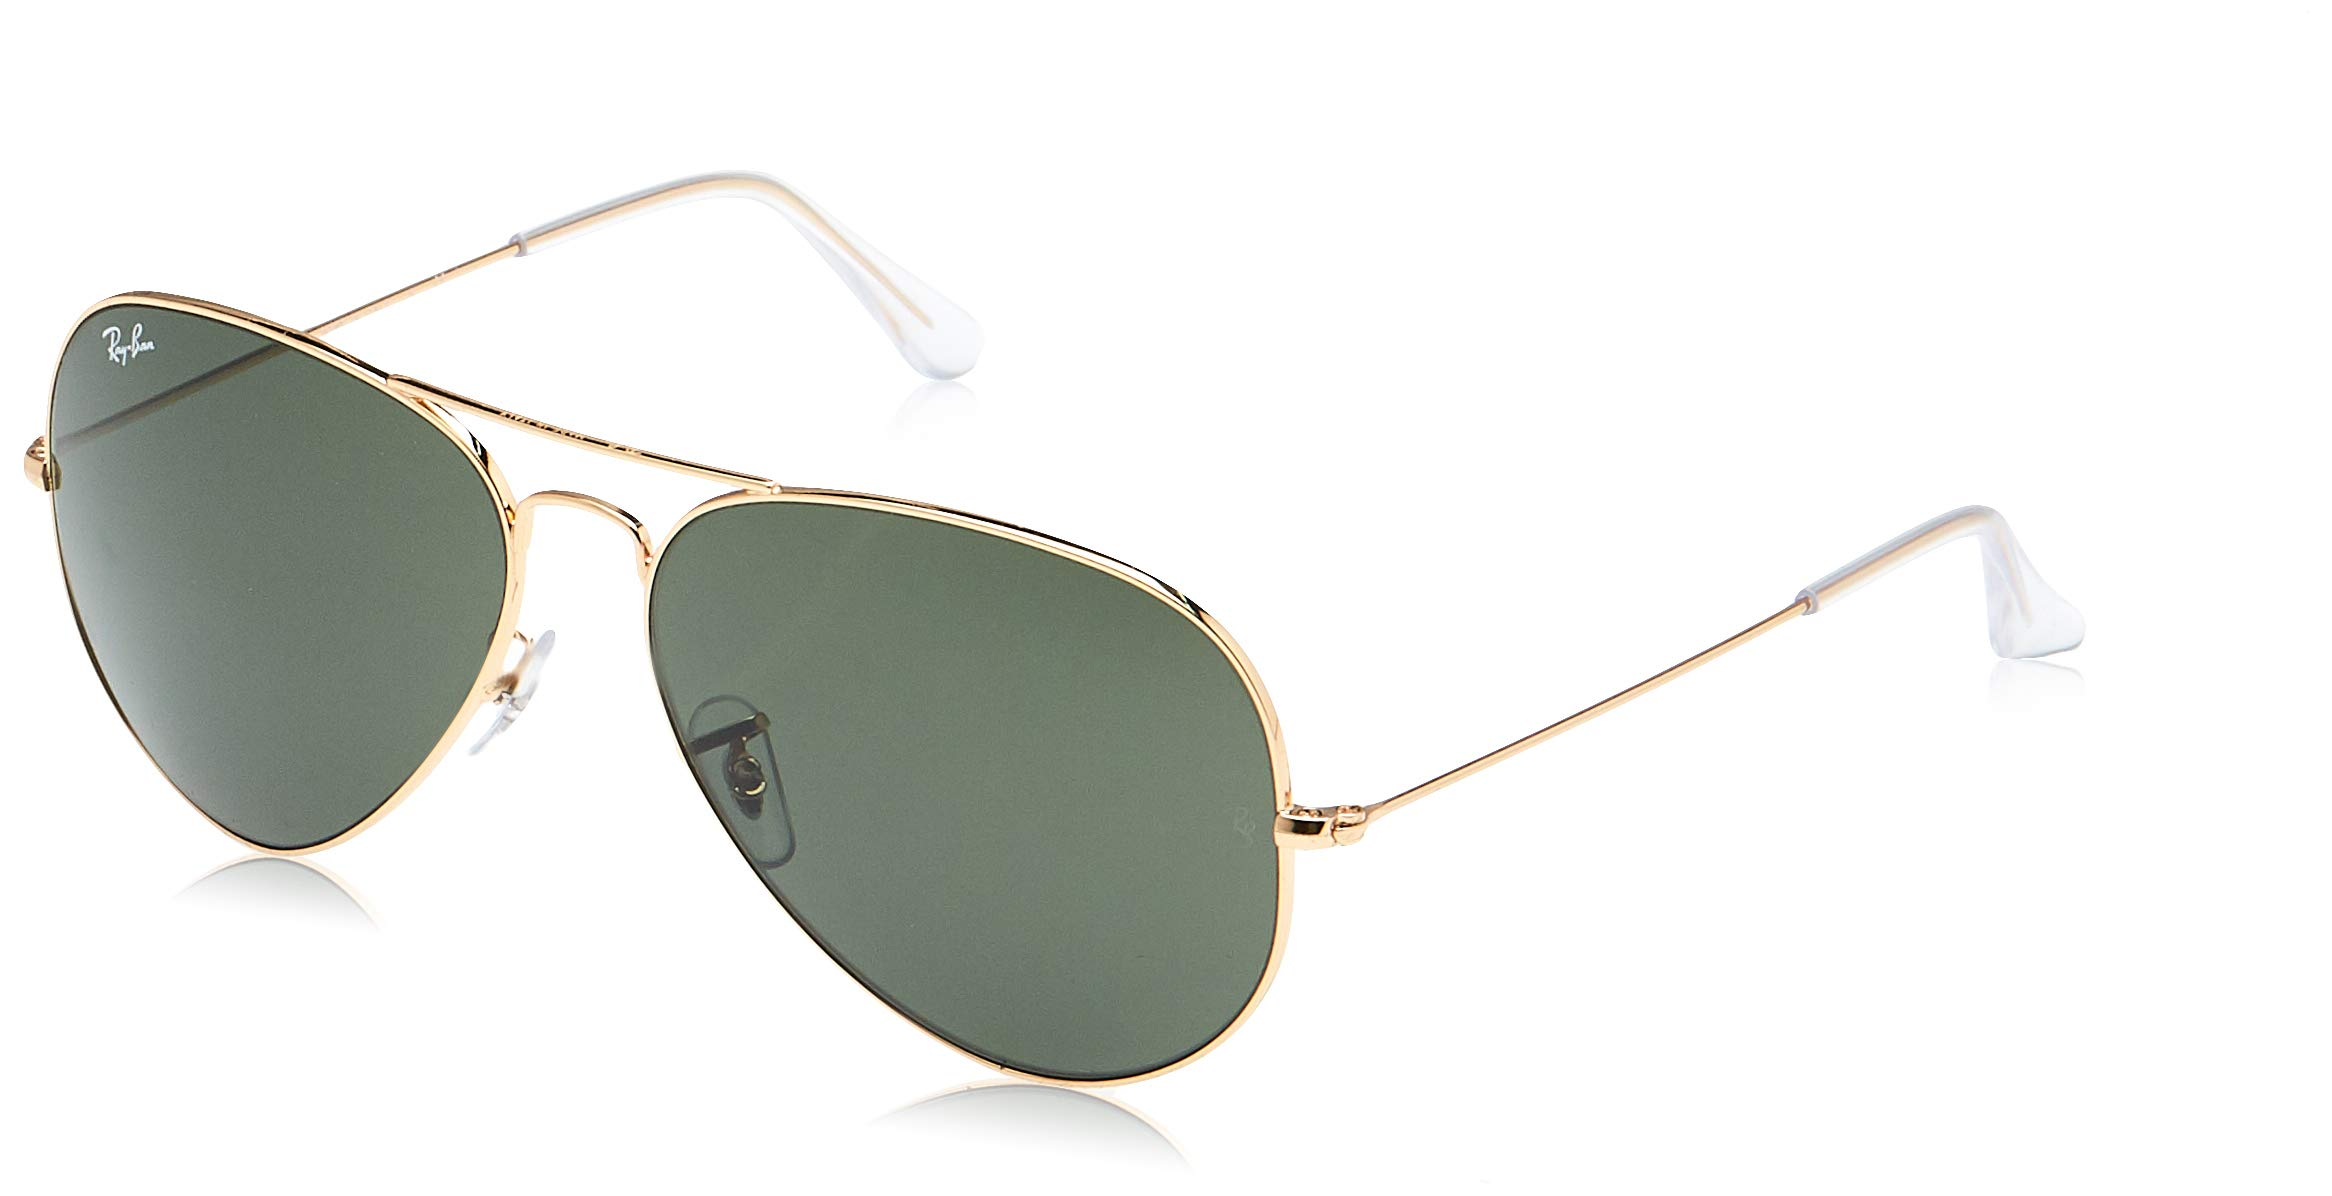 Ray-Ban Aviator Classic, Gold/ Grey Green, 62 mm by RAY-BAN